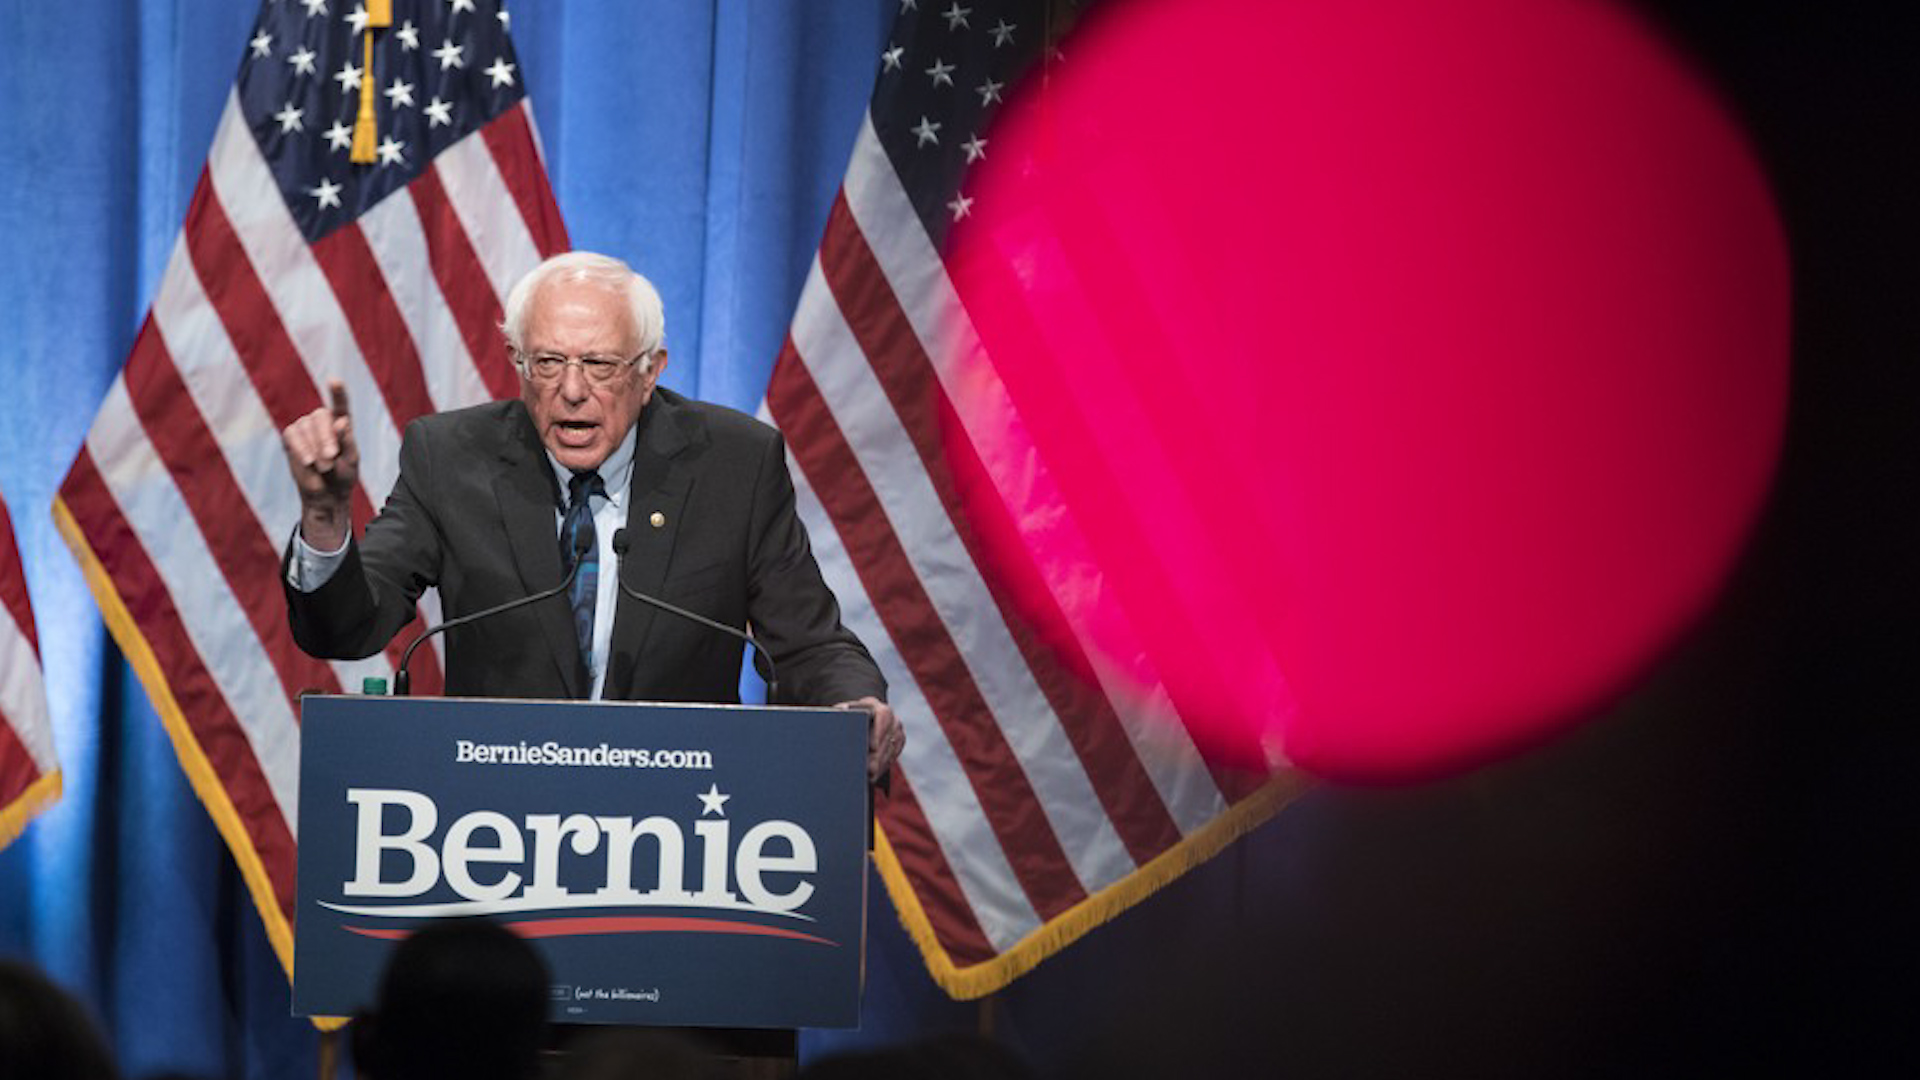 Sen. Bernie Sanders defends democratic socialism, reflecting internal Democratic battle over the party's philosophy